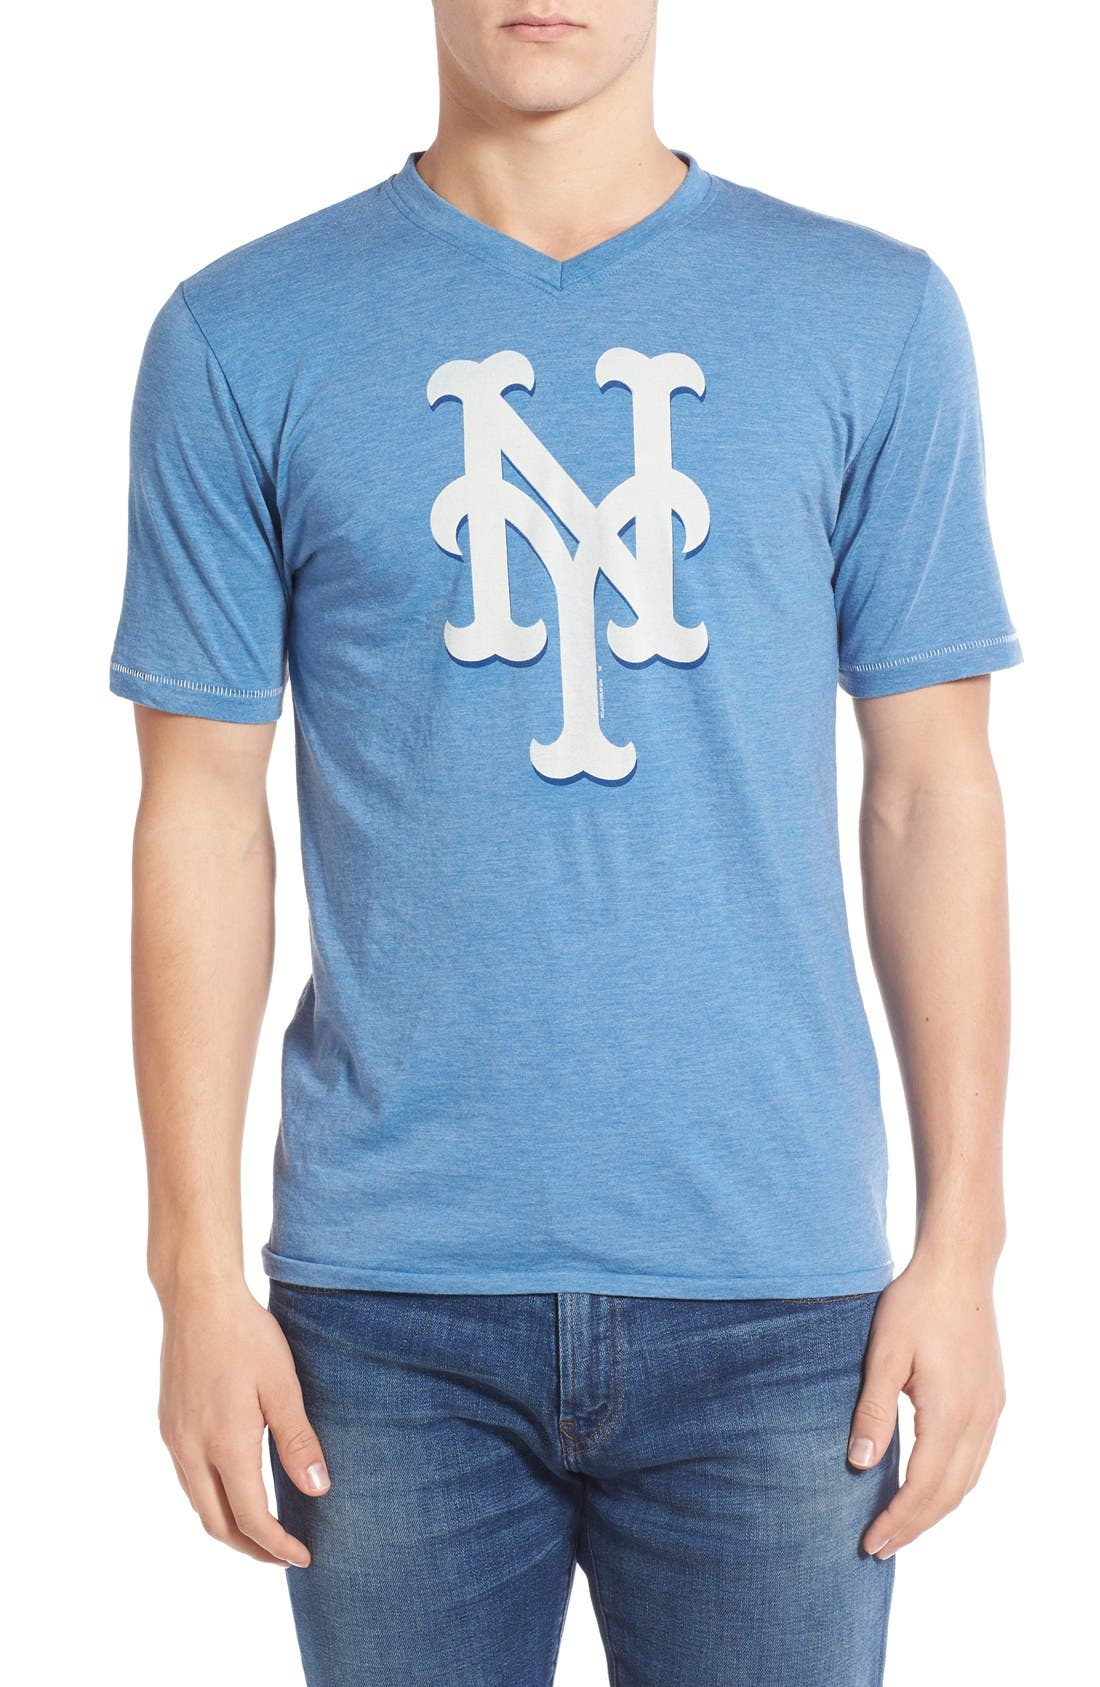 Red Jacket 'New York Mets - Calumet' Graphic V-Neck T-Shirt